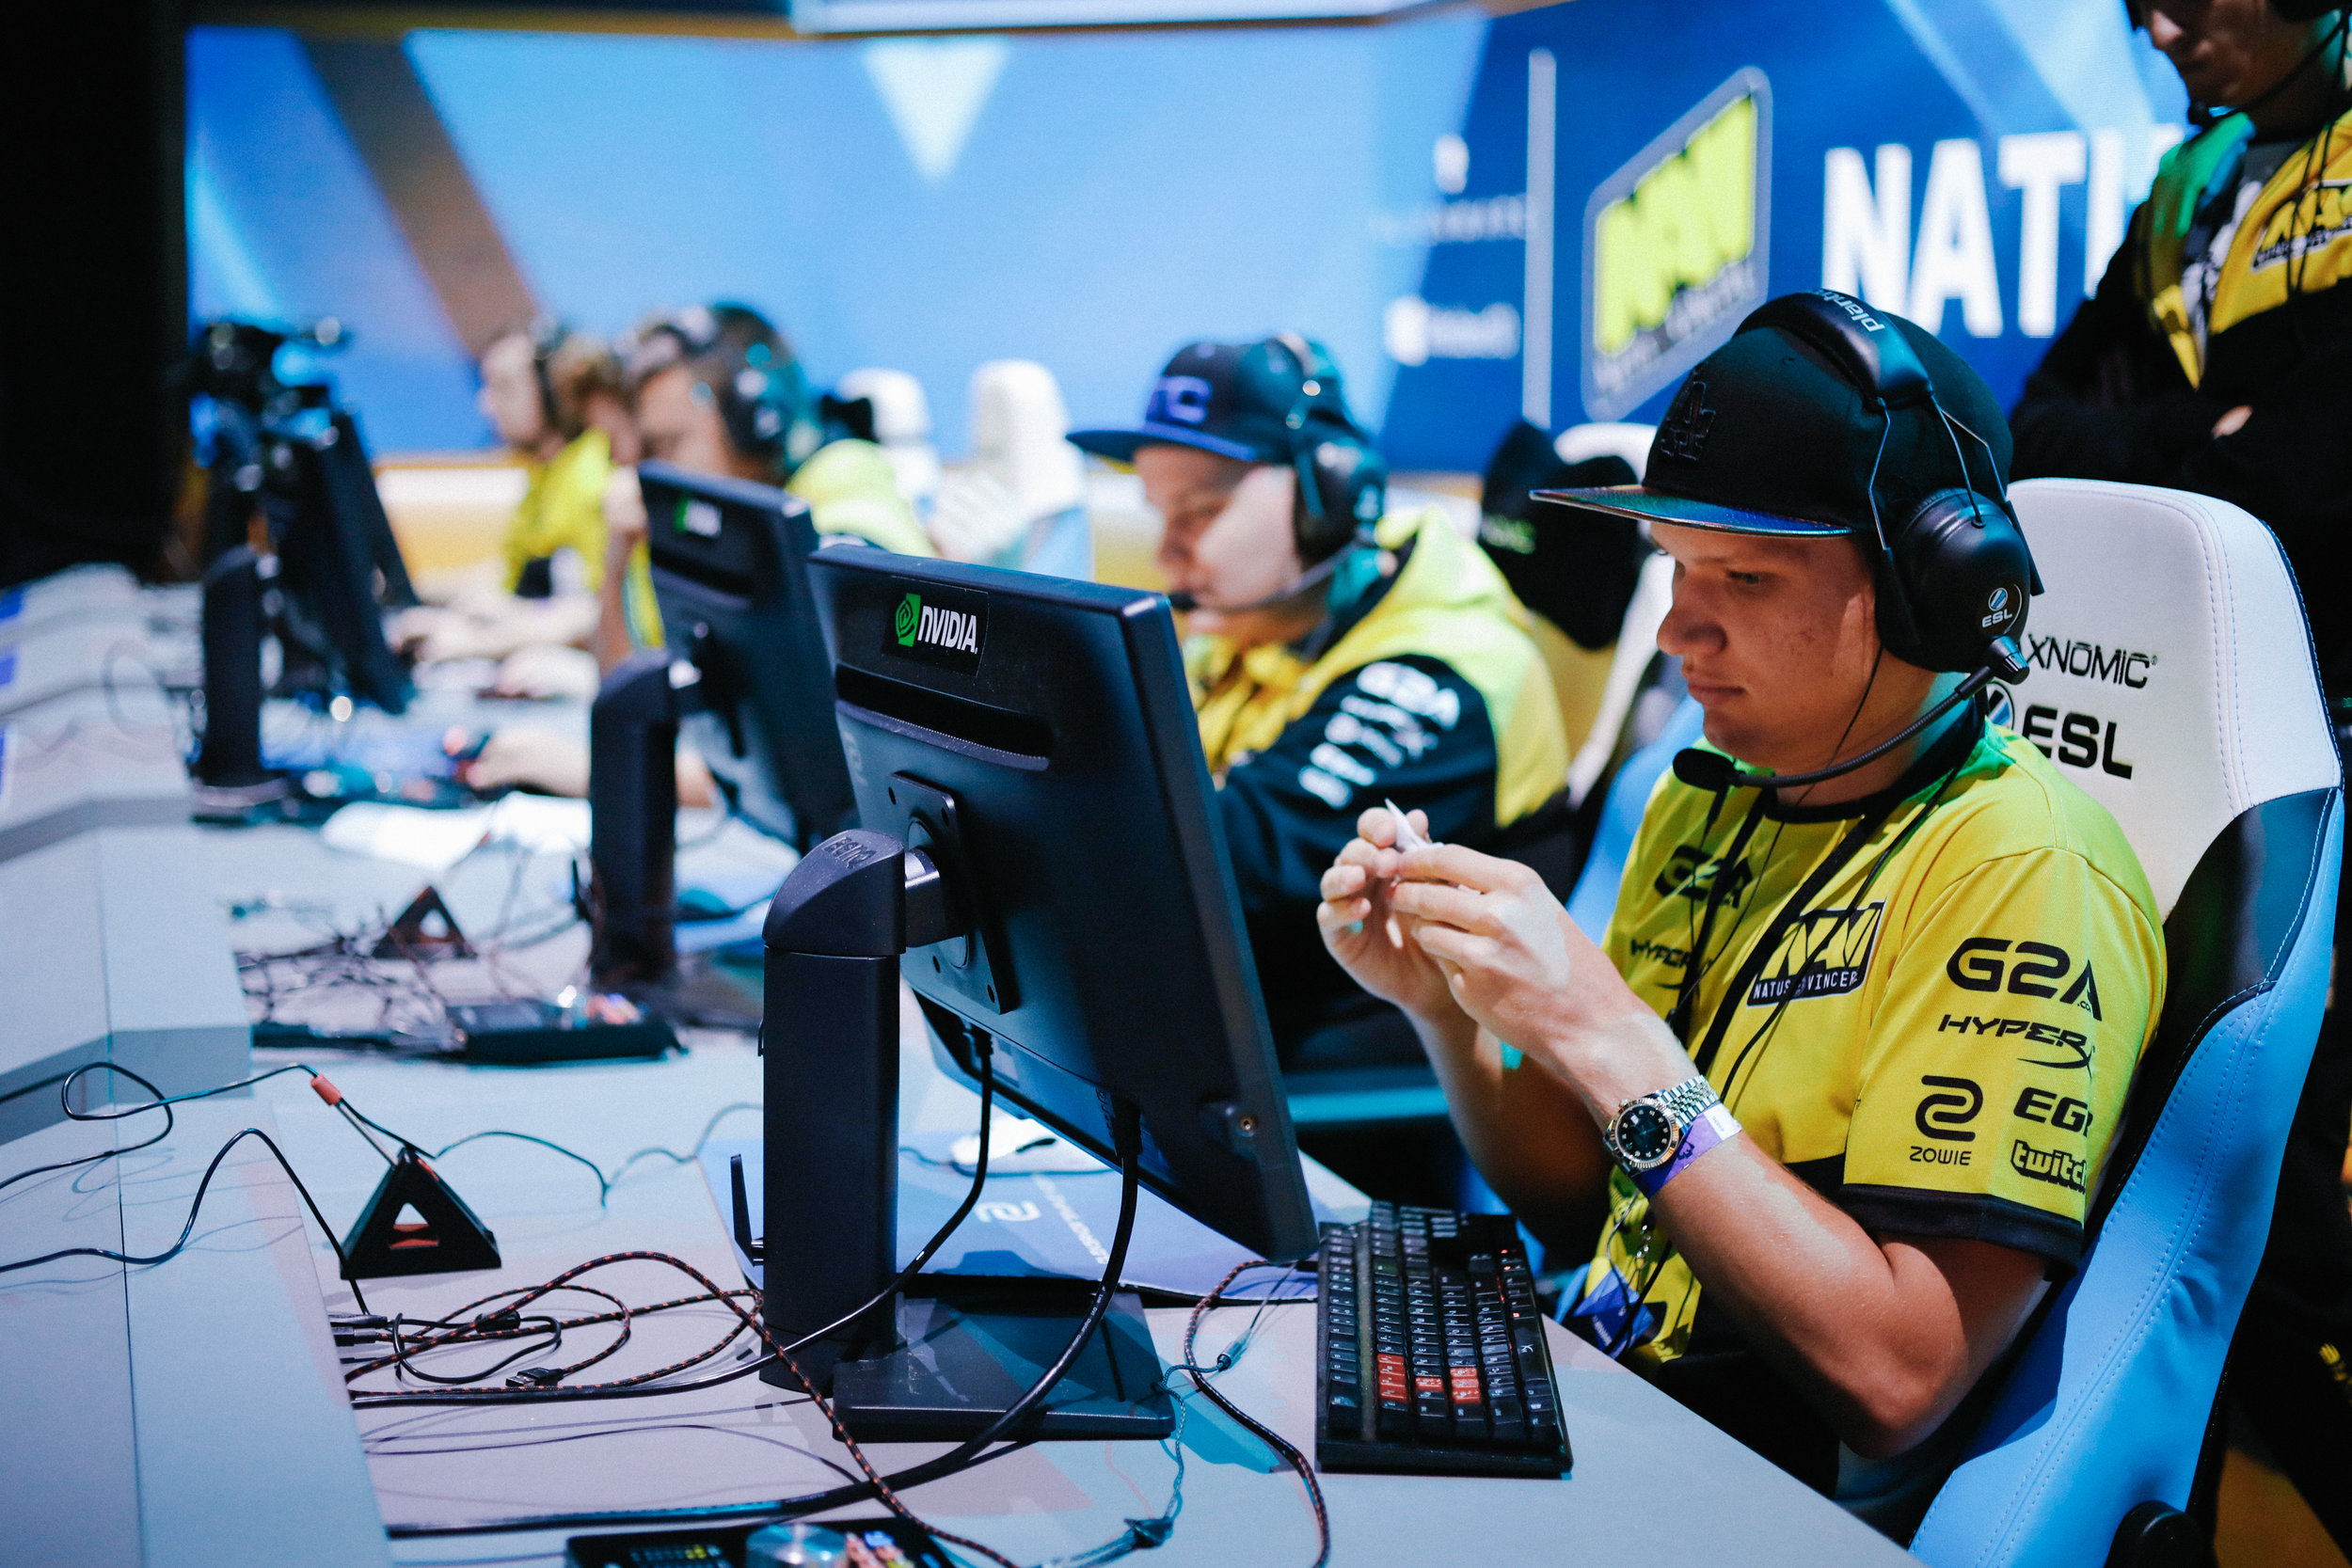 Team Navi focused in competition during ESL One New York.